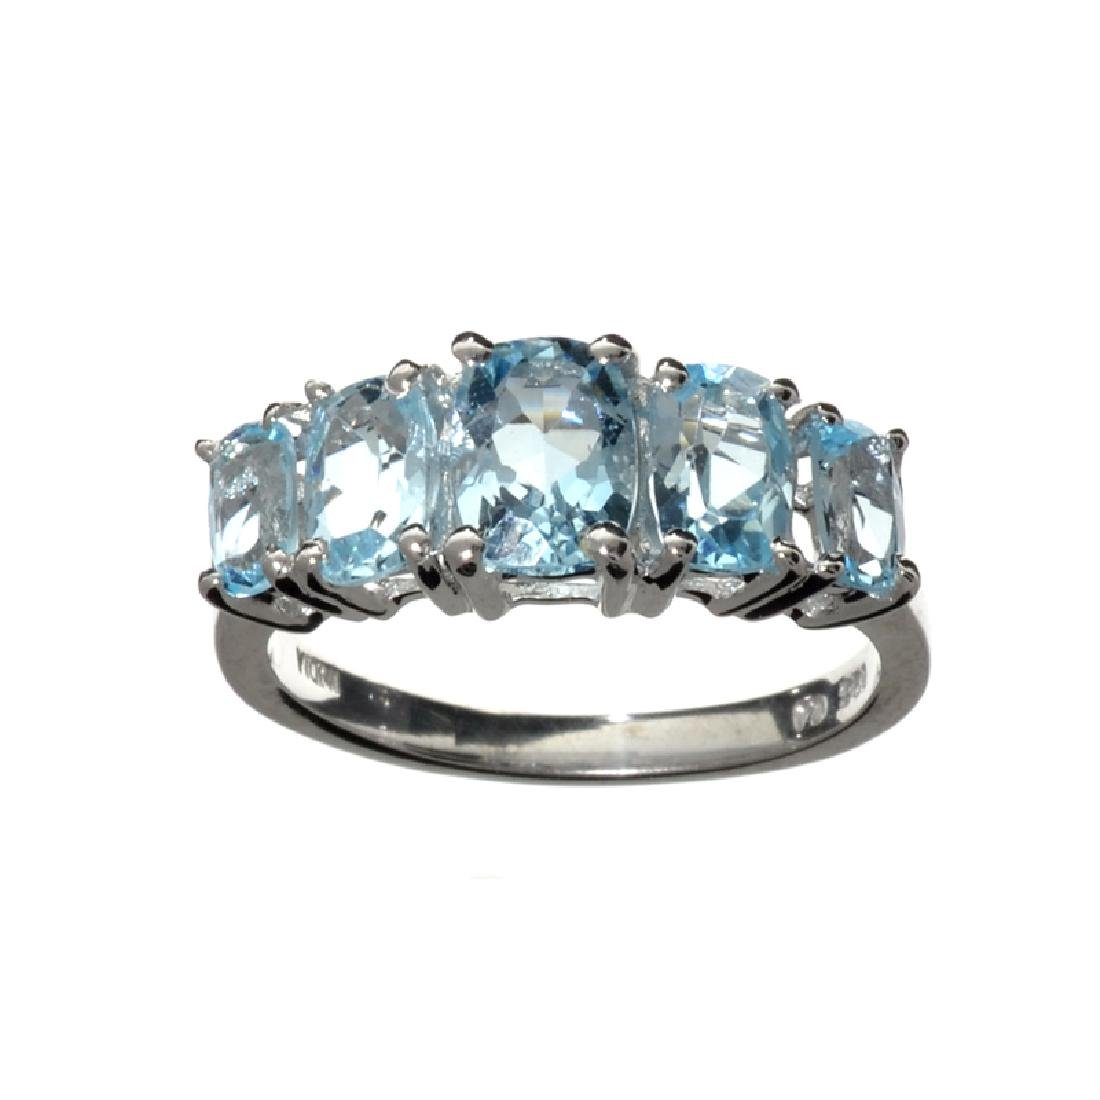 APP: 0.8k Fine Jewelry 2.07CT Oval Cut Blue Topaz And